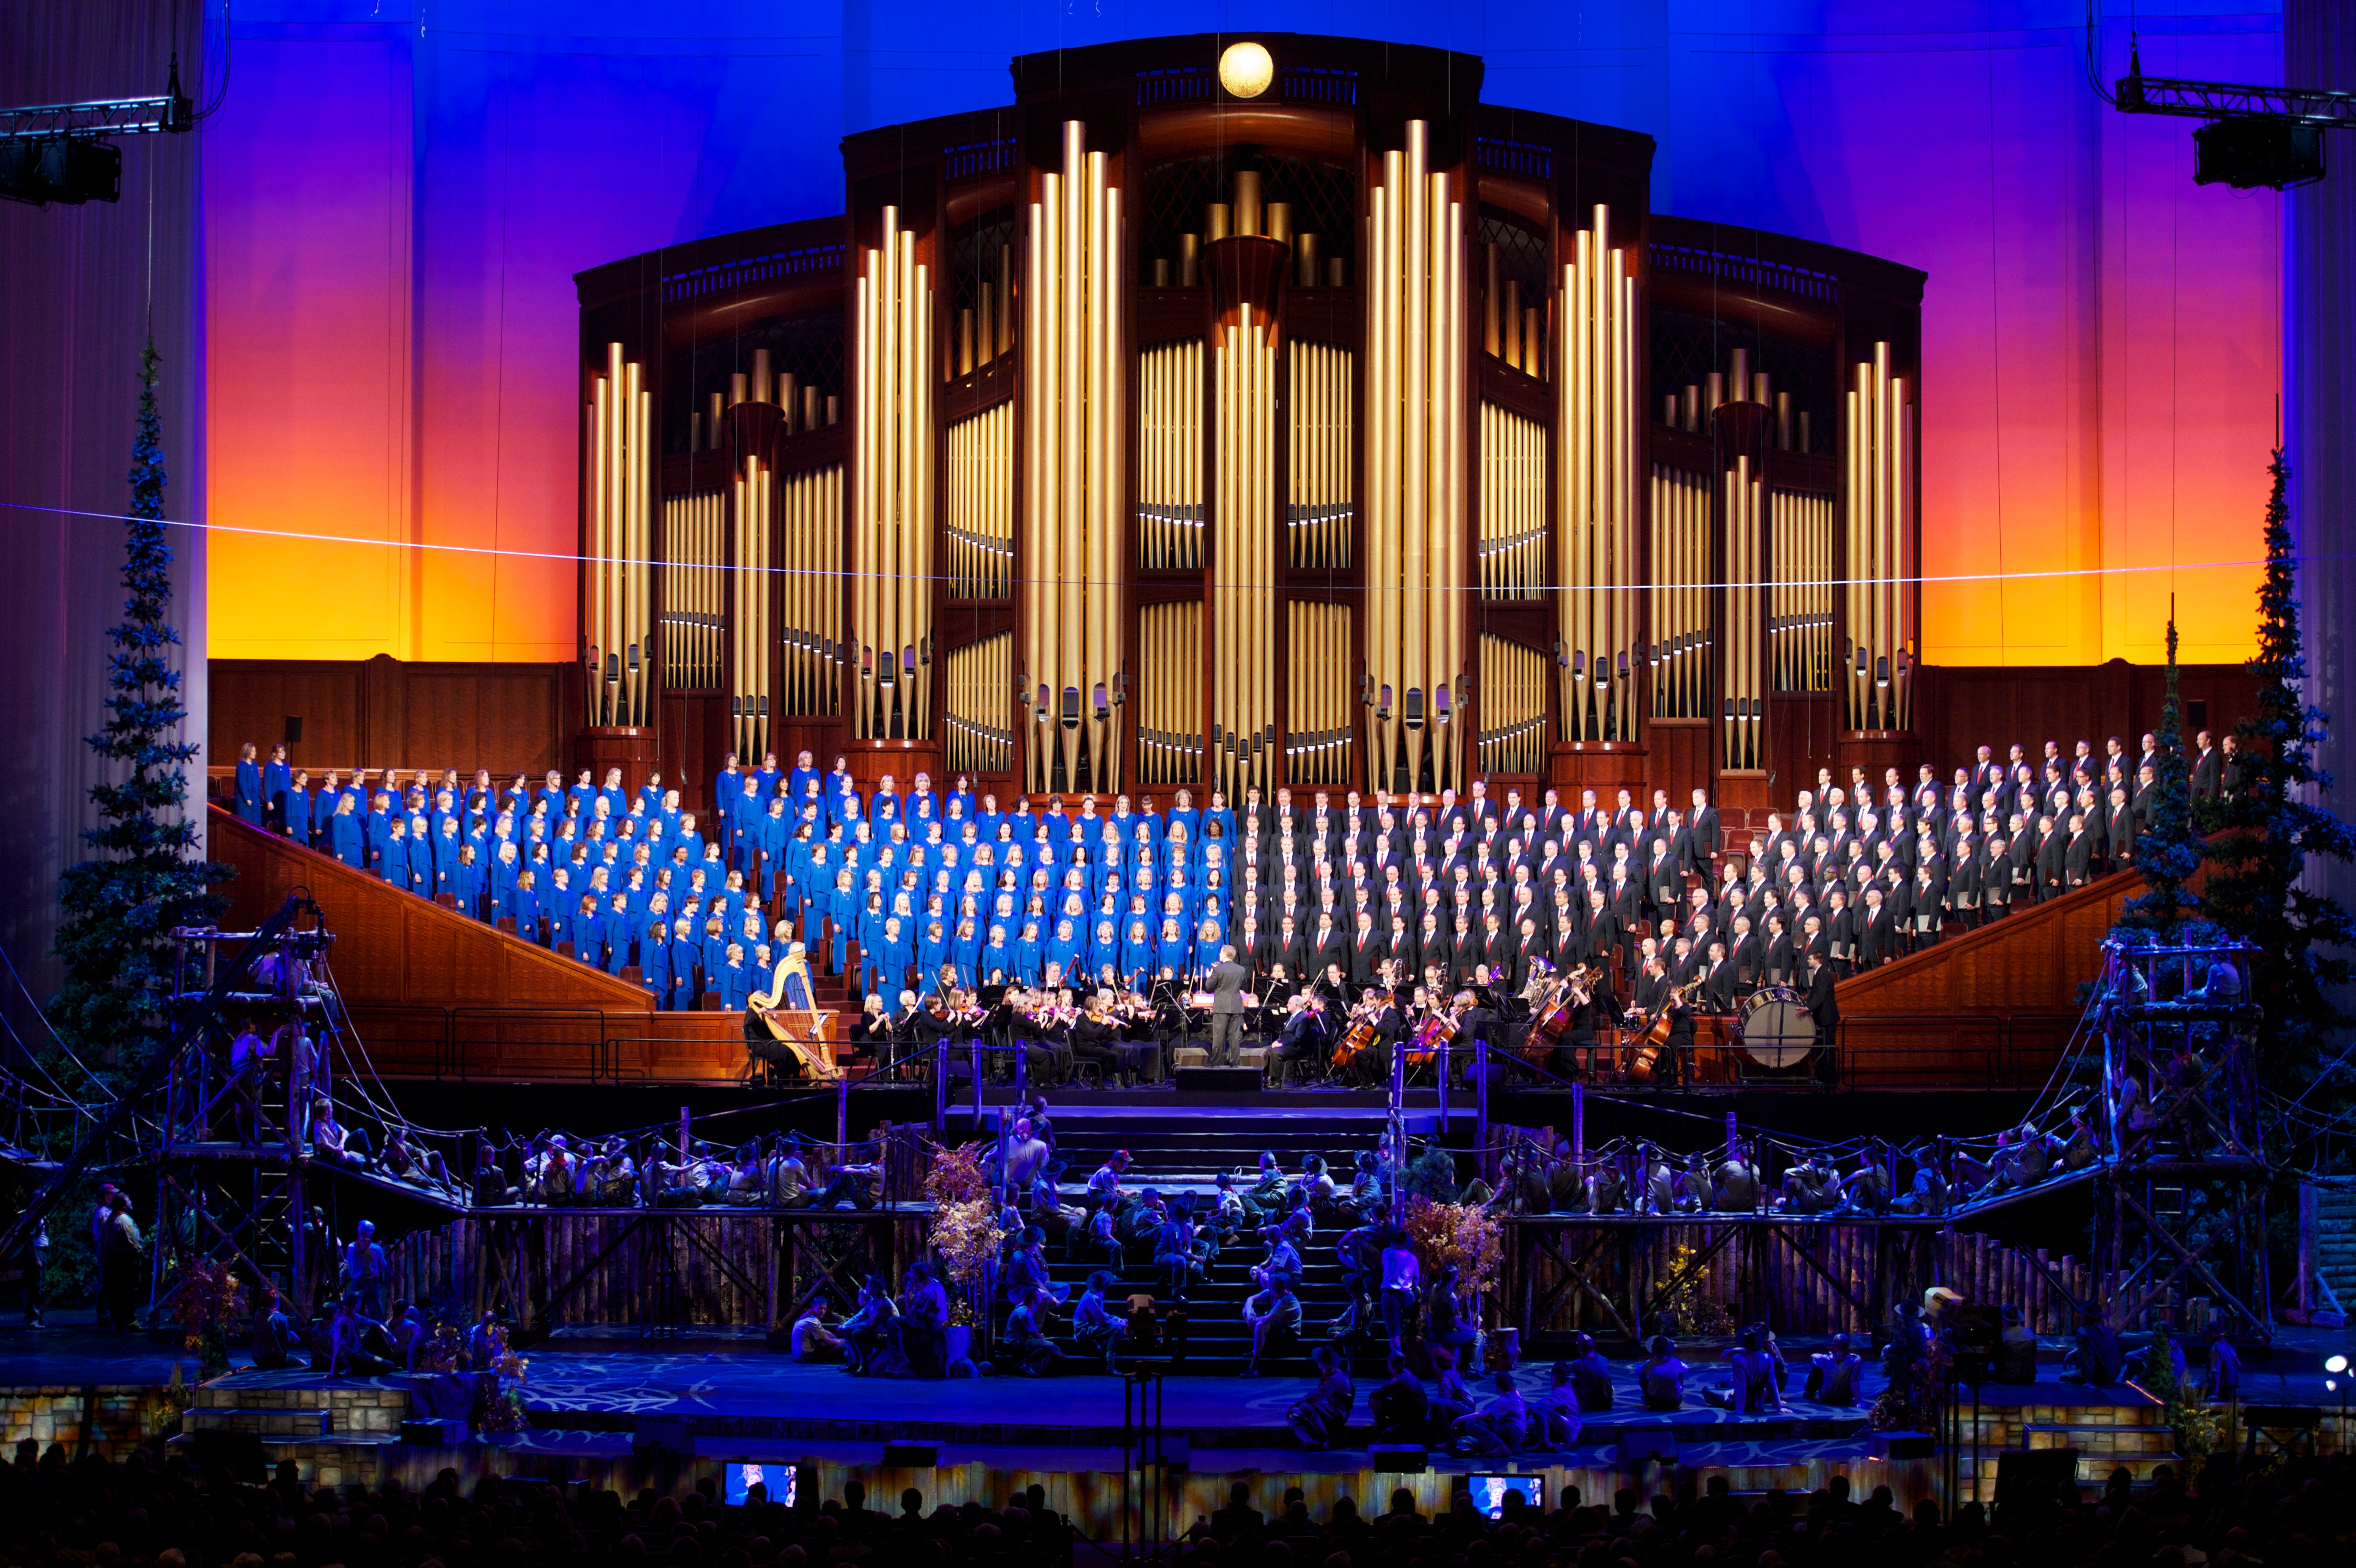 """The Mormon Tabernacle Choir and Orchestra at Temple Square treat the audience of """"A Century of Honor"""" to several songs during the conclusion of the program. Photo courtesy Mormon Newsroom."""